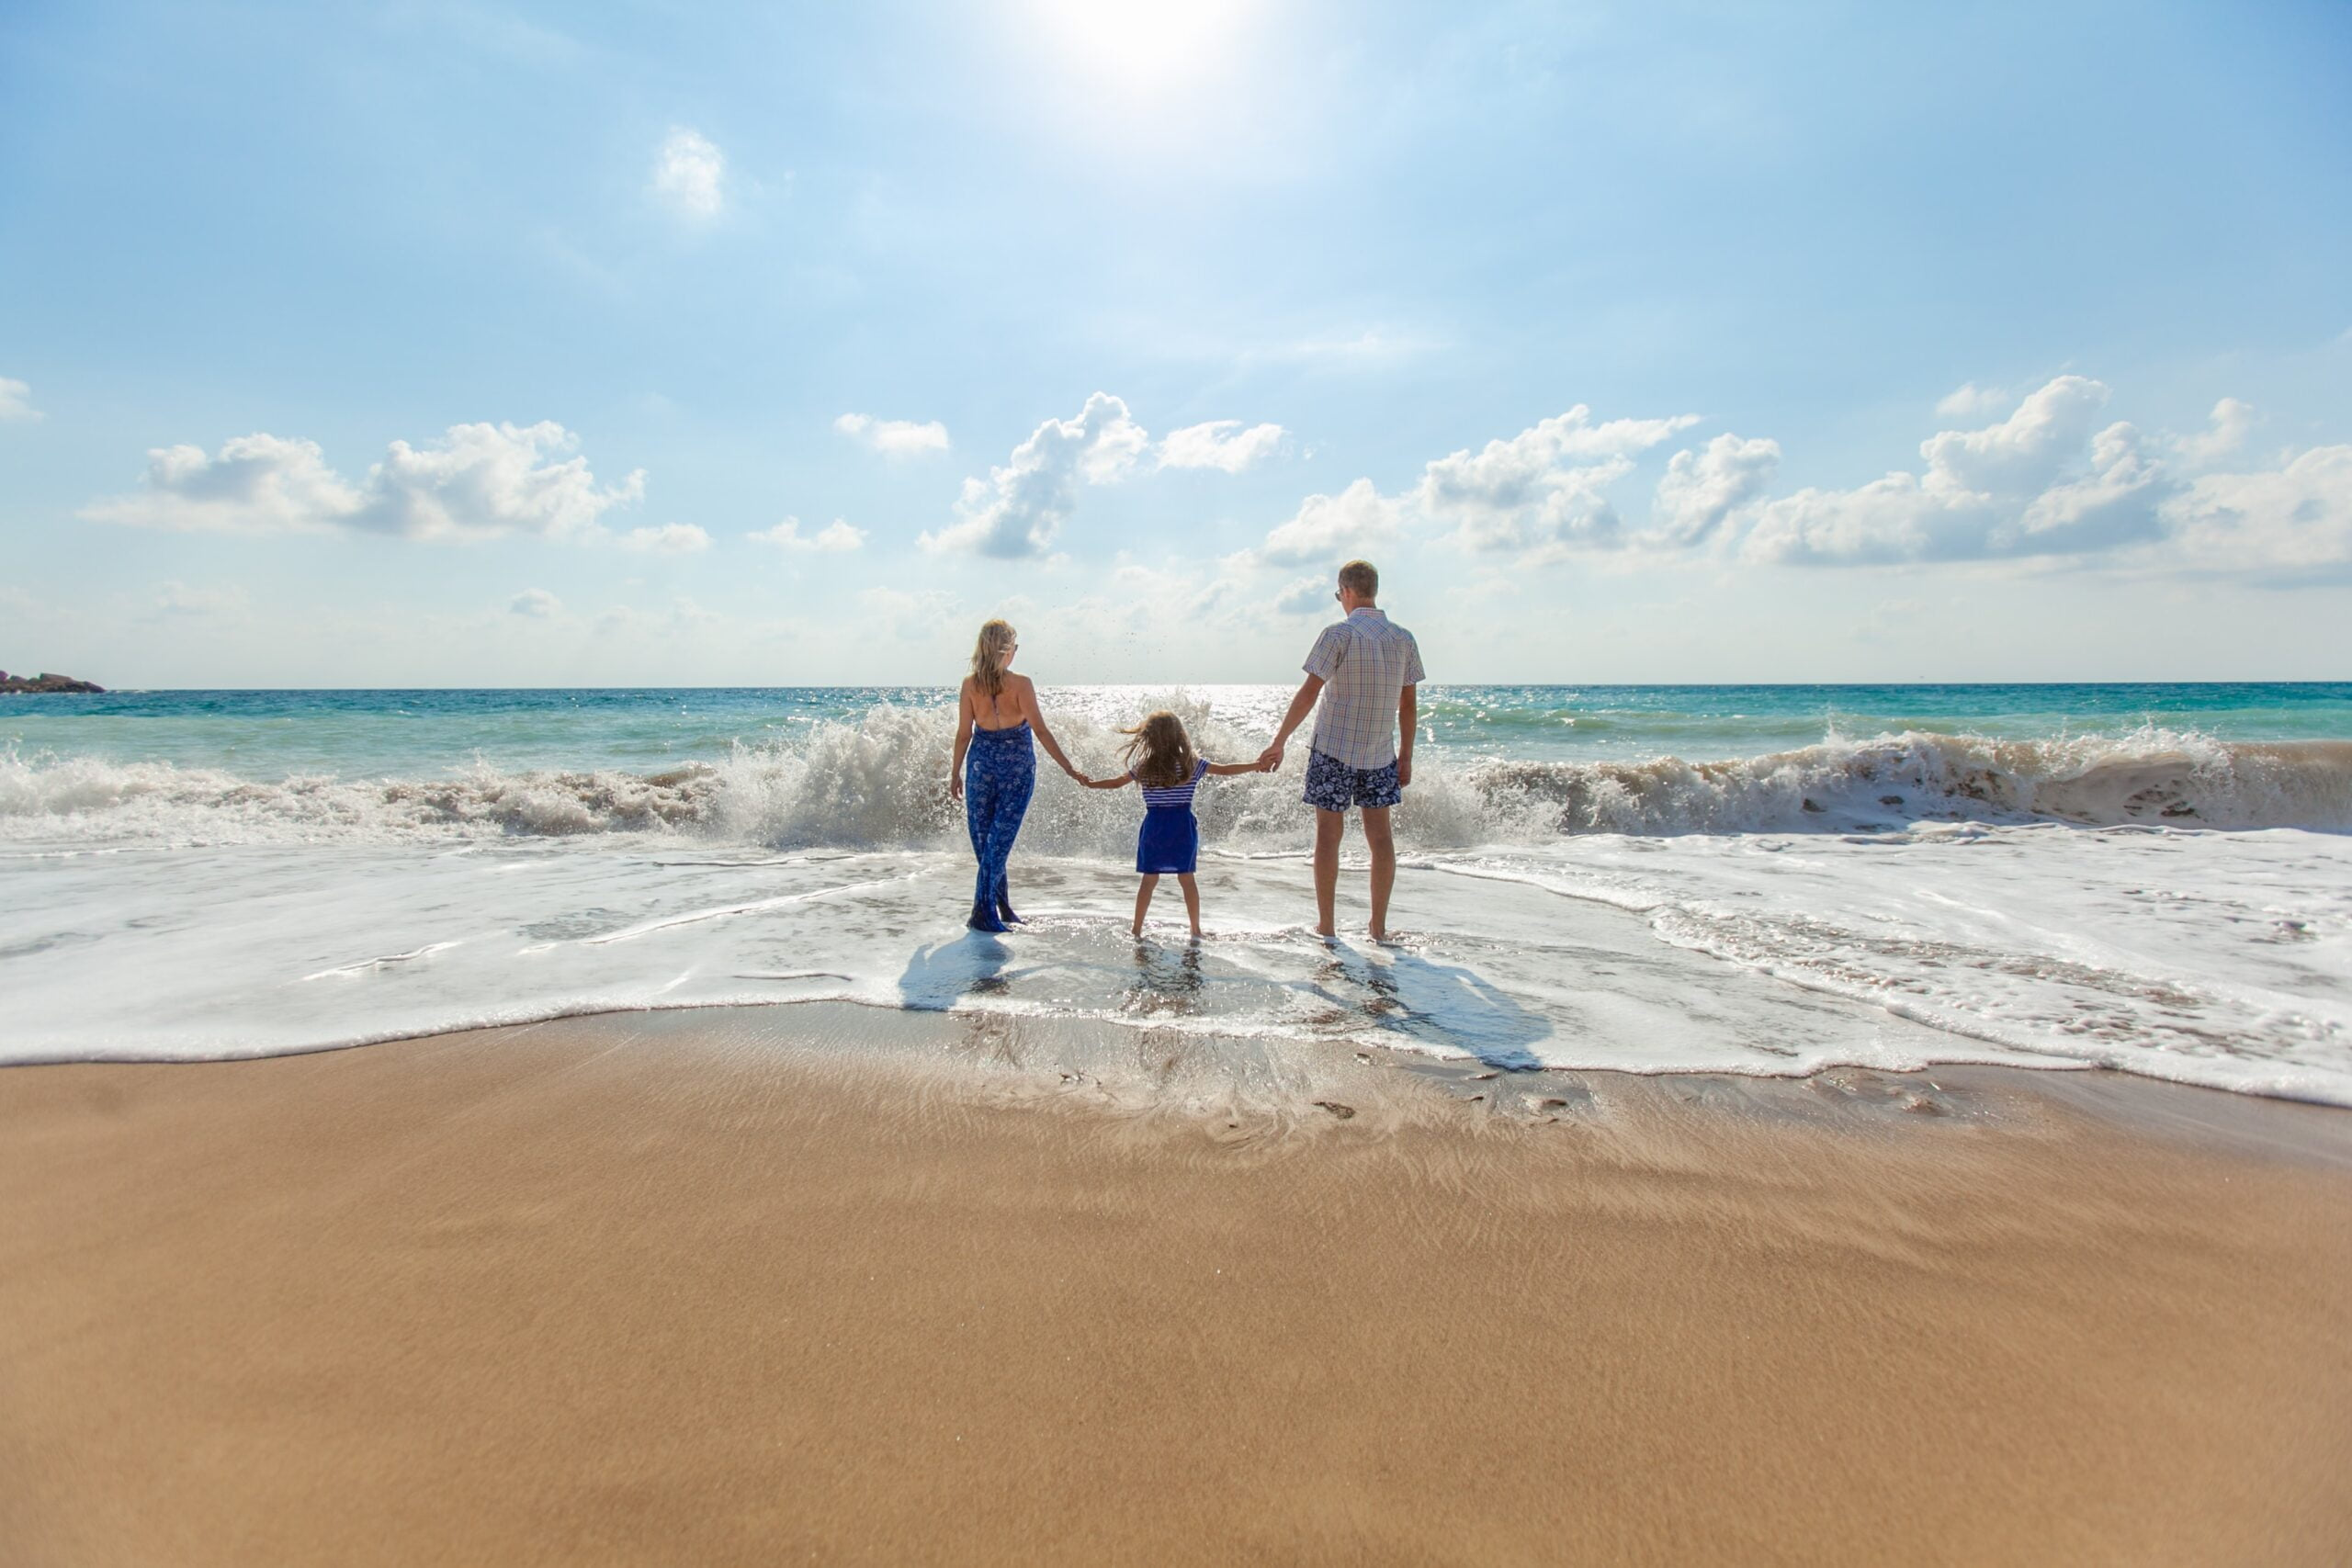 A family holiday hands on the shoreline of a sunny beach